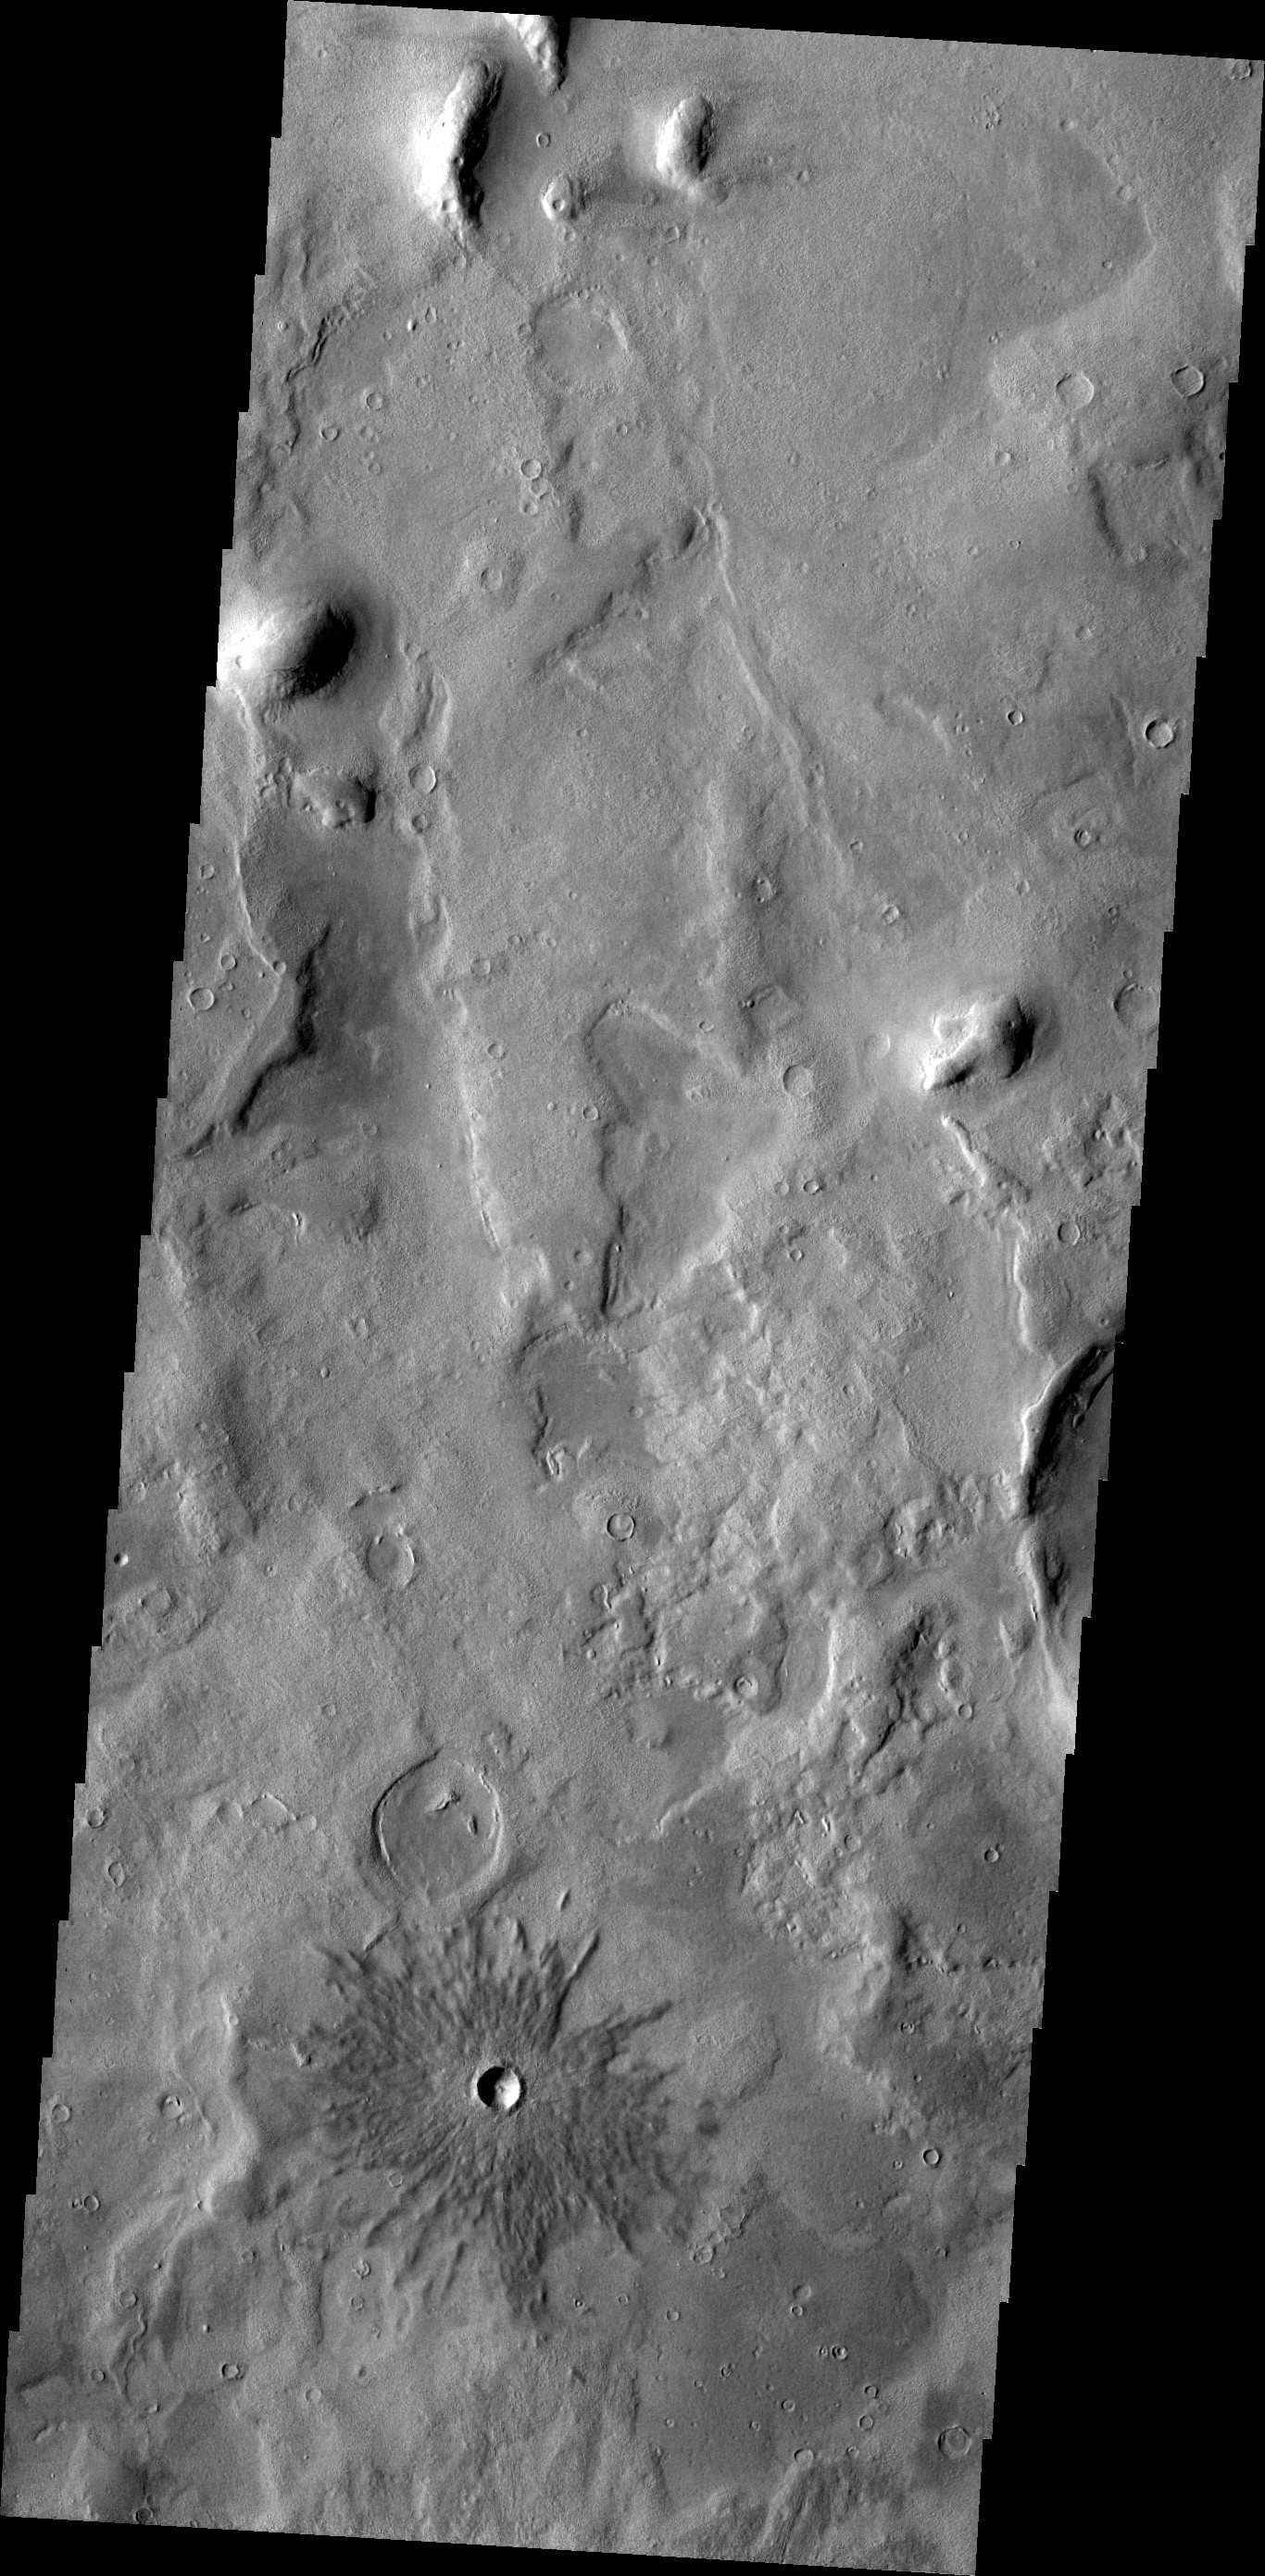 Crater | Mars Odyssey Mission THEMIS